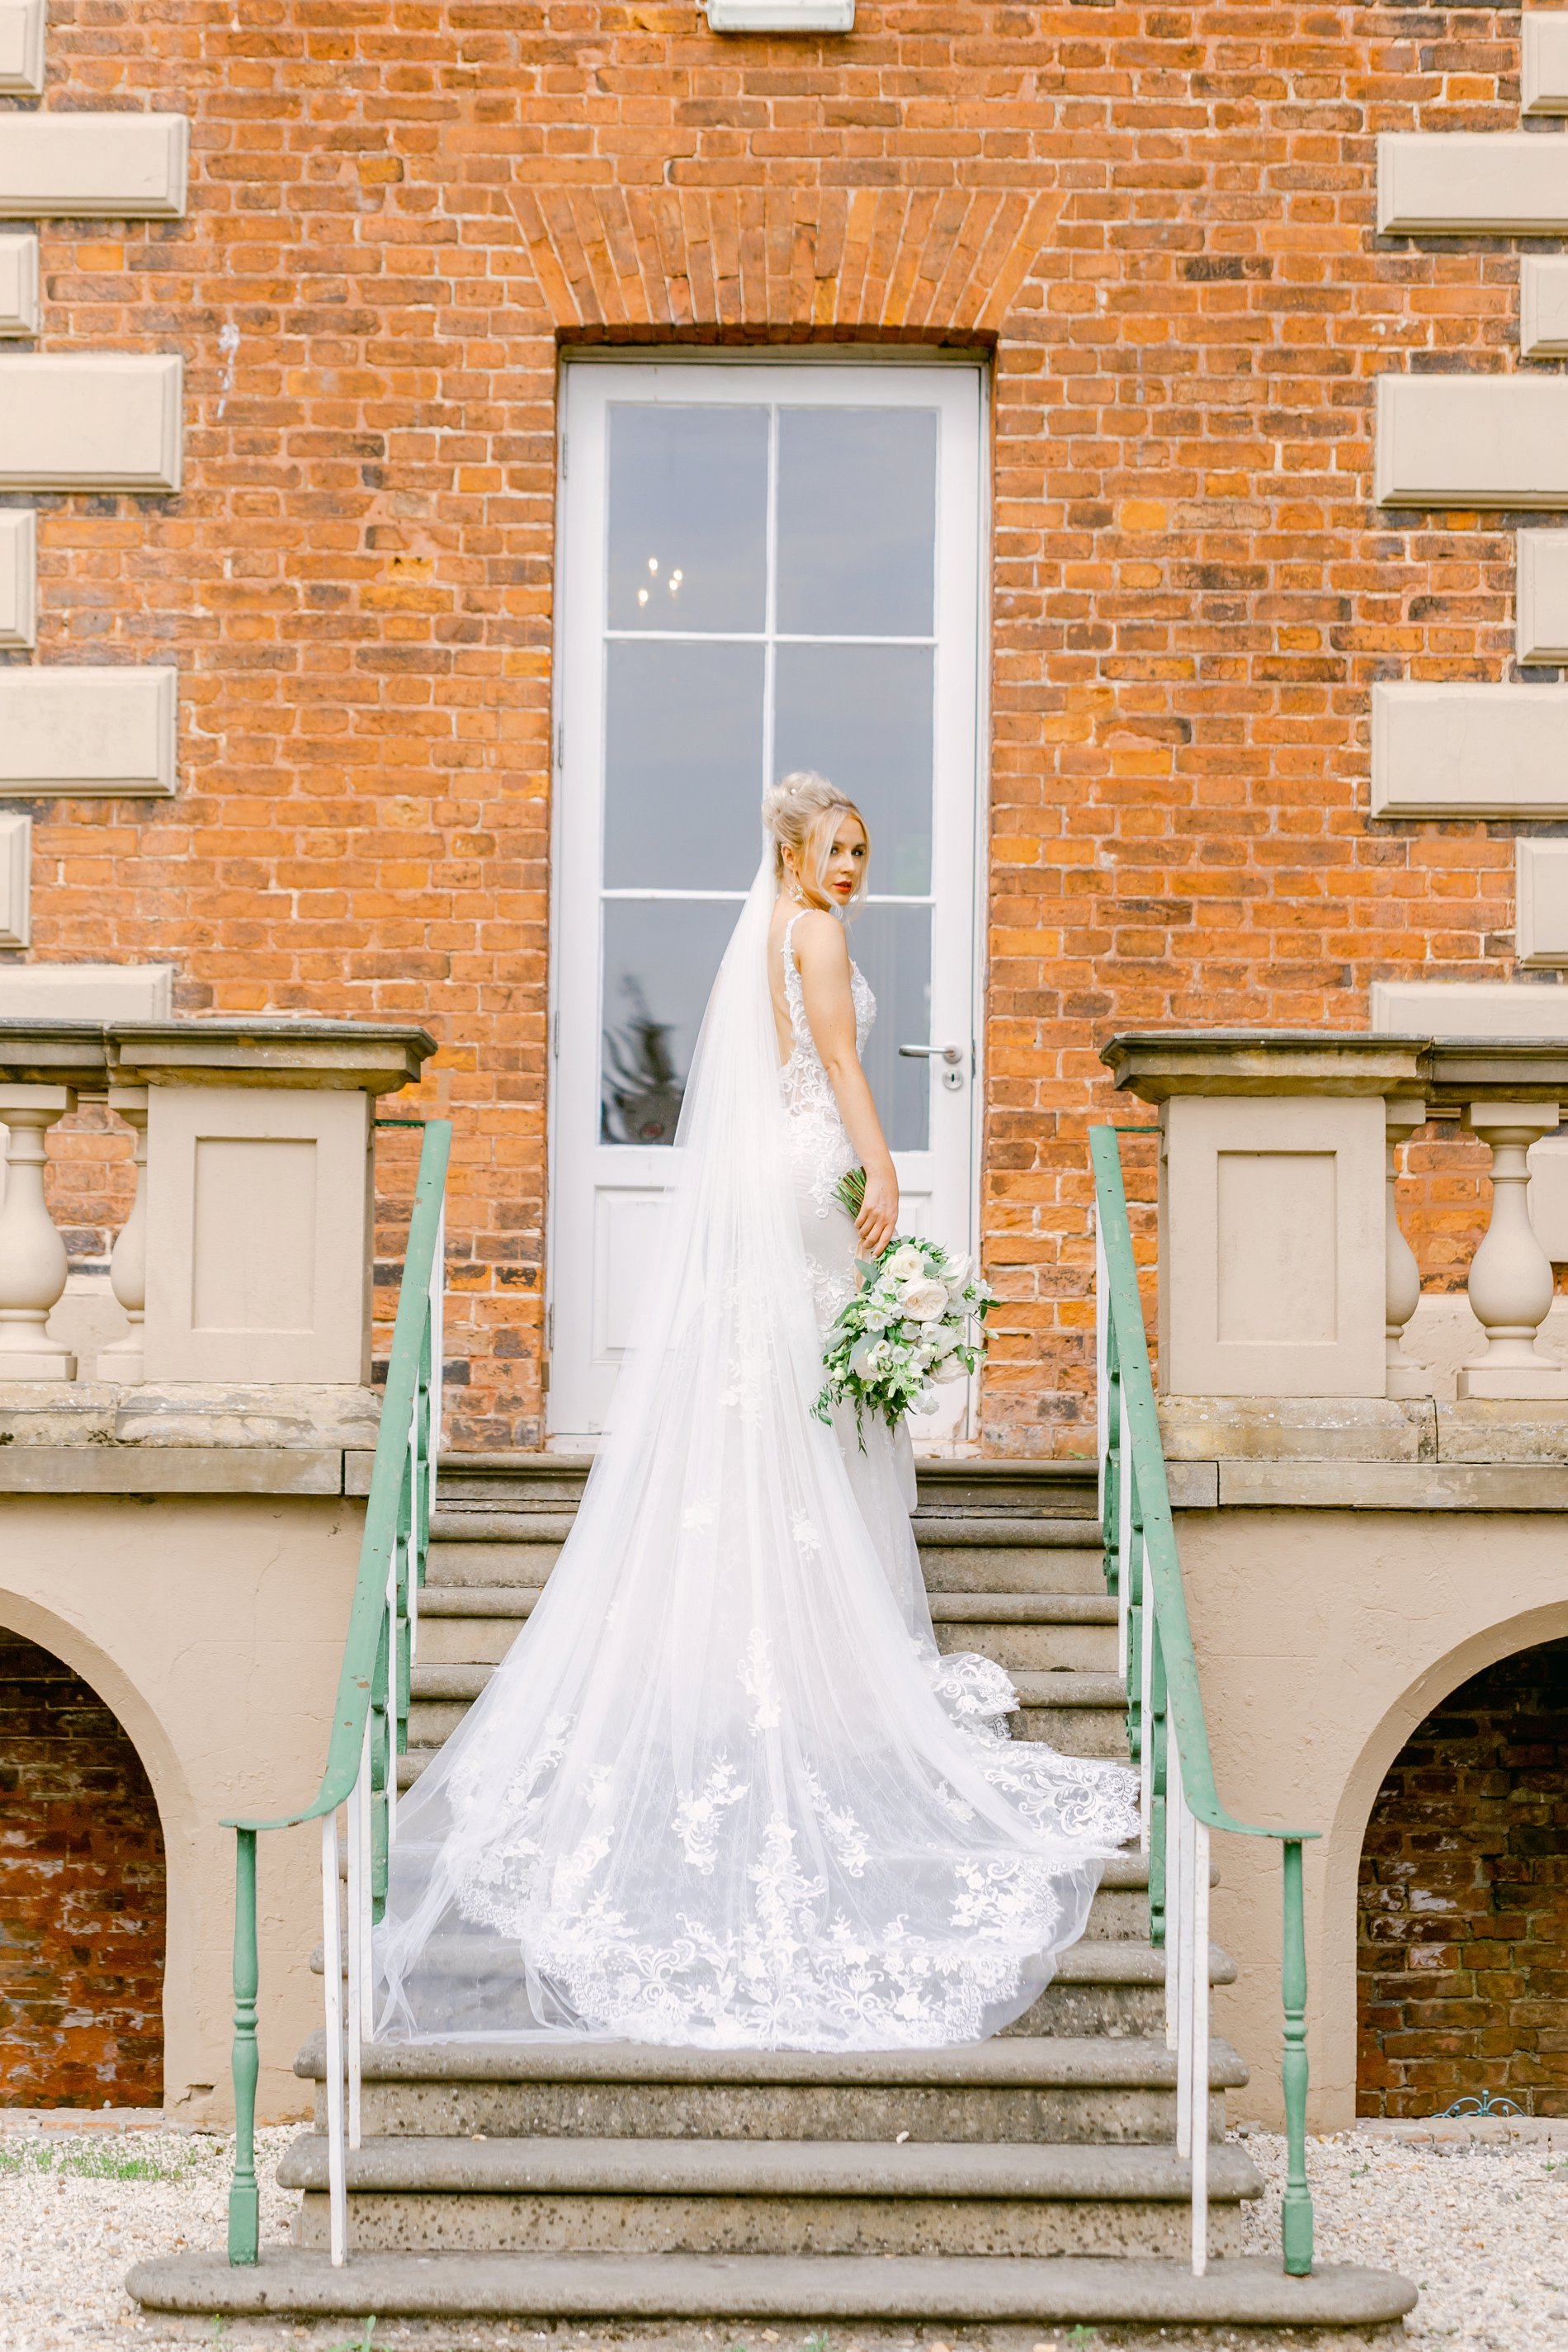 An Elegant UNVEILED Network wedding shoot at Hirst Priory (c) Ailsa Reeve Photography (36)